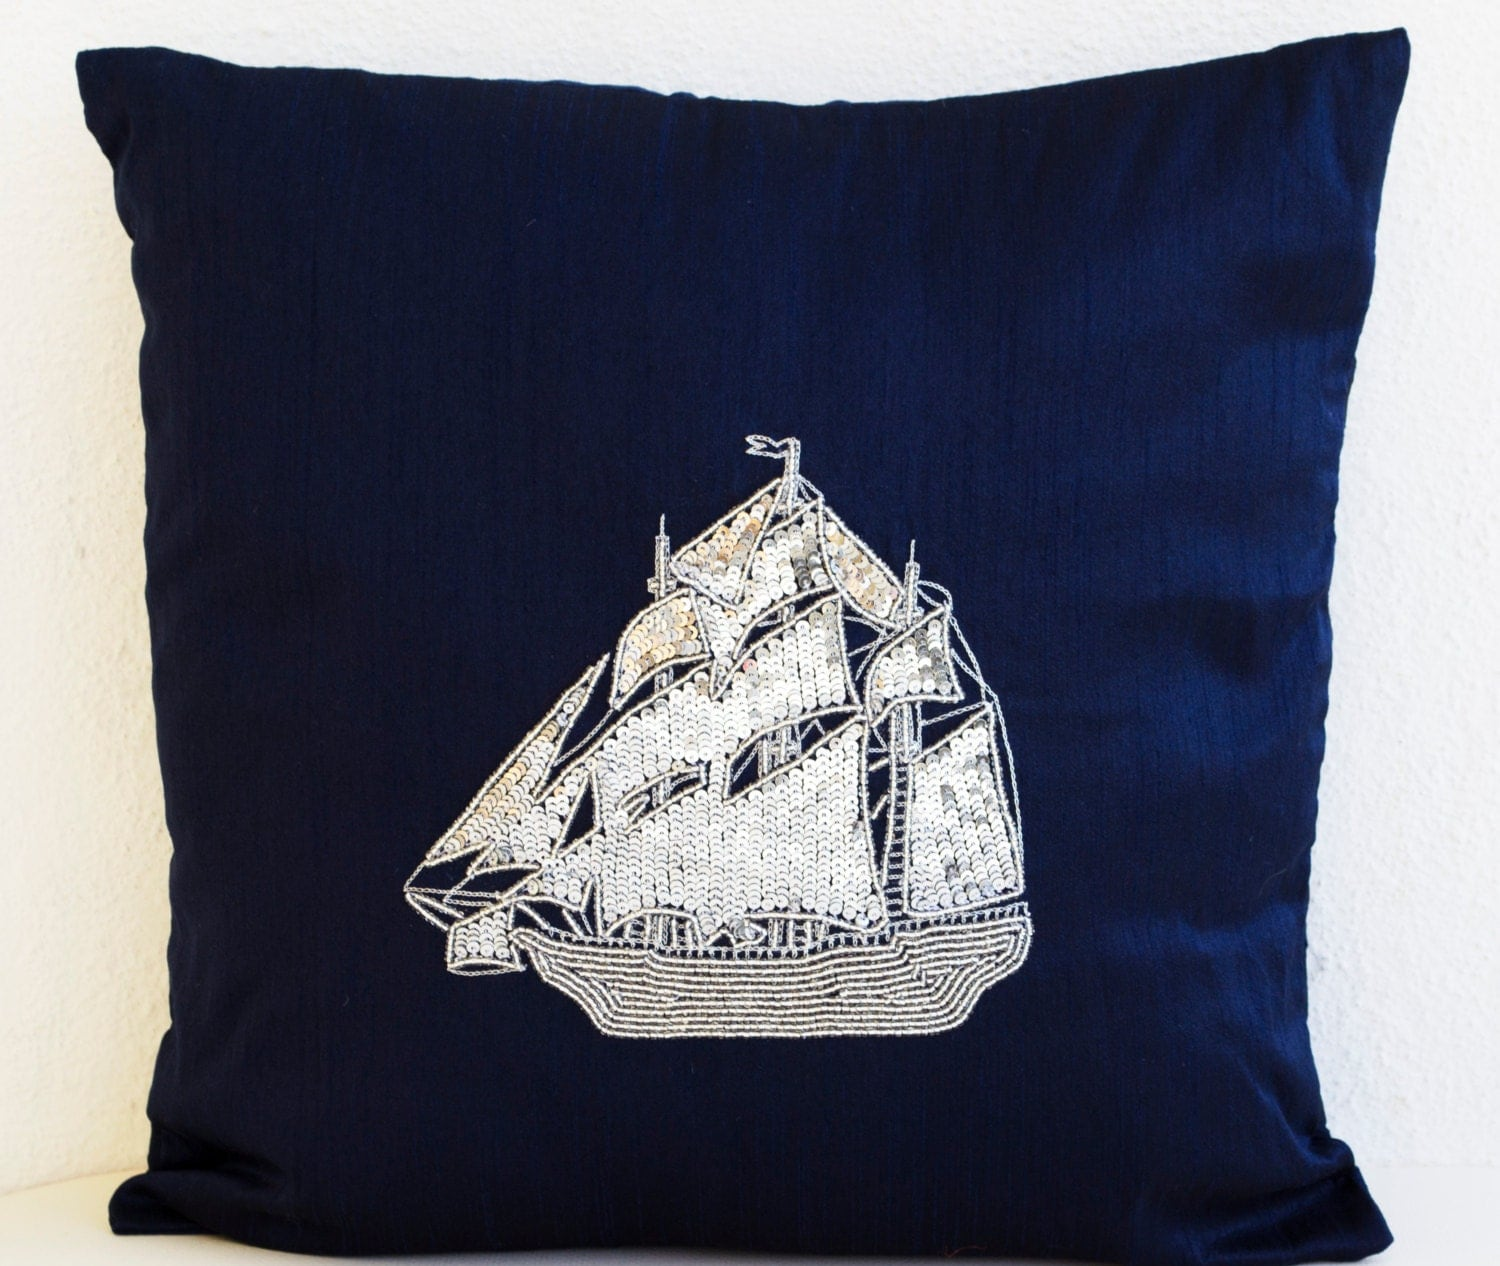 Navy Blue Decorative Pillow Covers : Navy blue decorative throw pillow covers Nautical pillow with